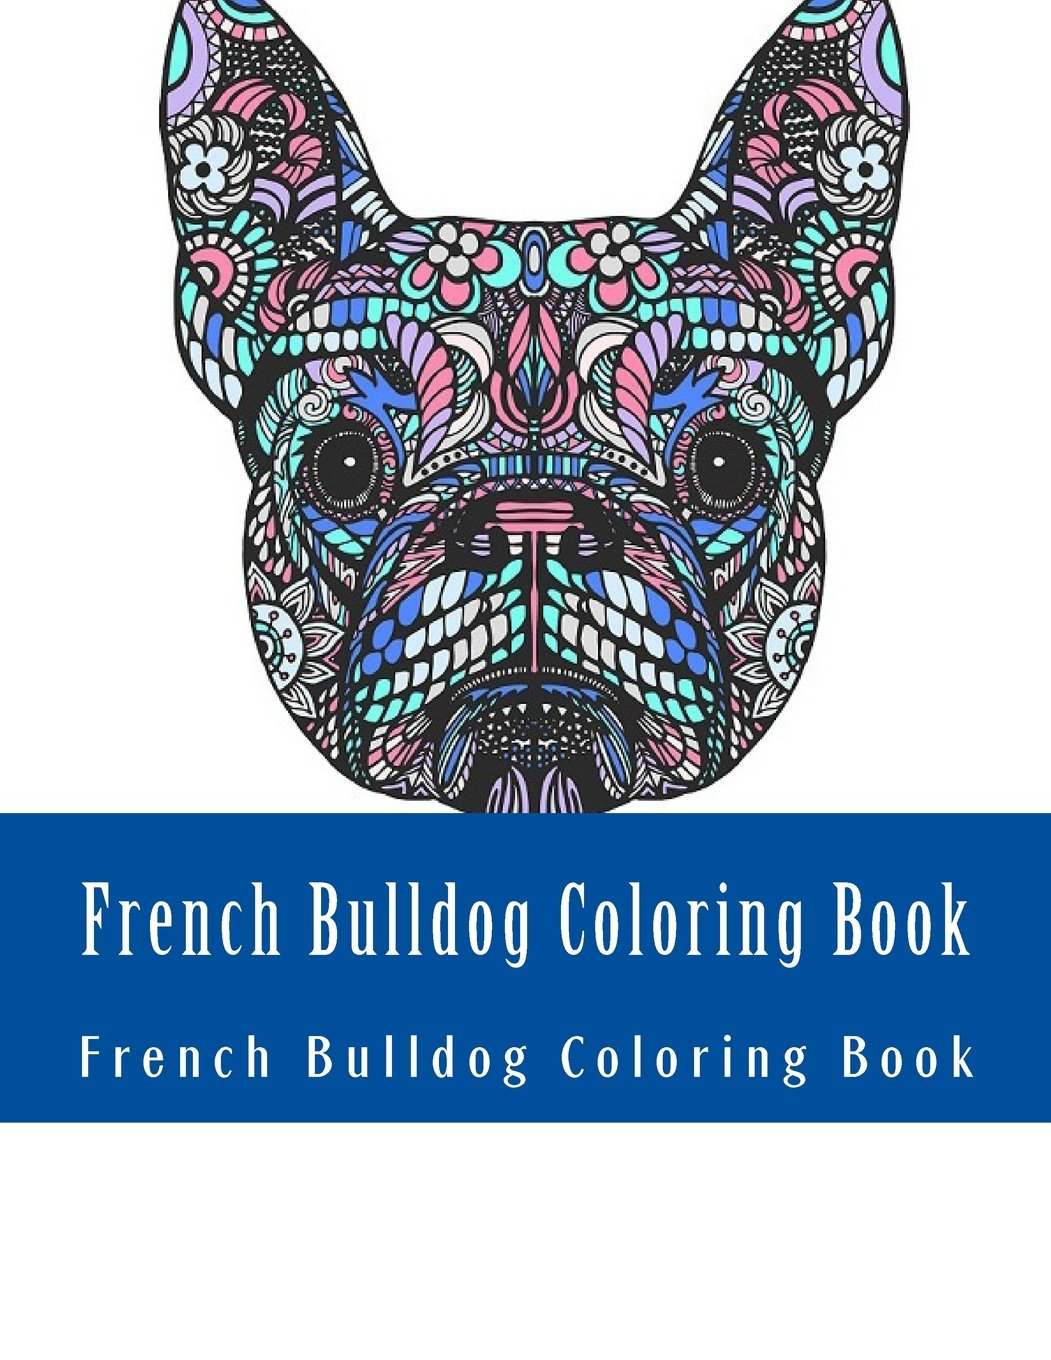 Amazon French Bulldog Coloring Book Large One Sided Stress Relieving Relaxing For Grownups Women Men Youths